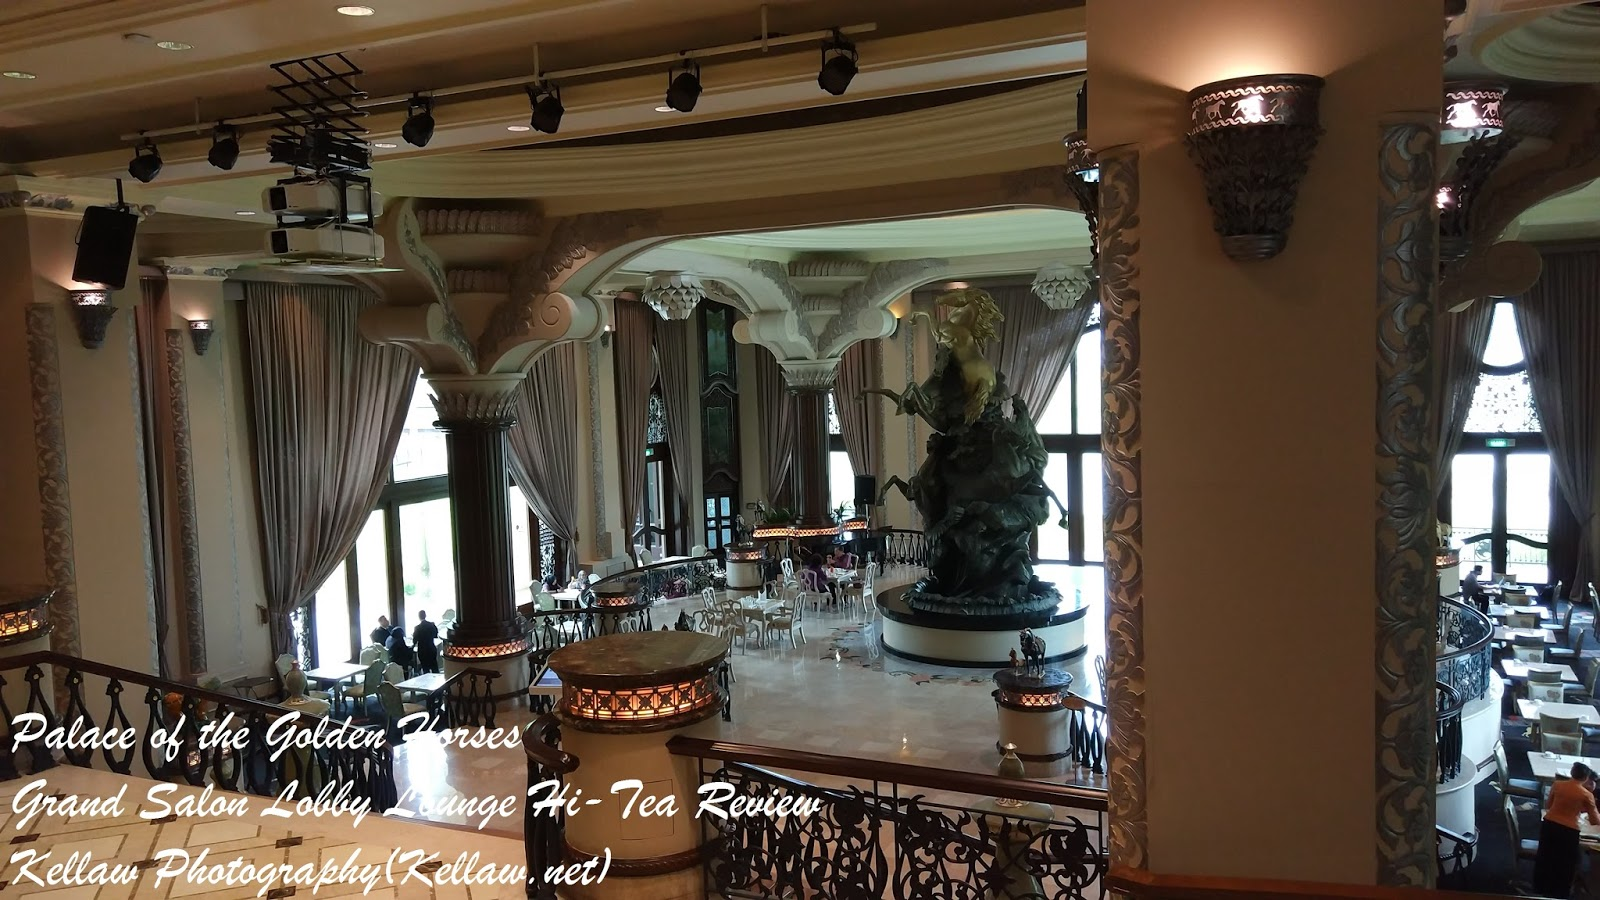 You should try the Grand Salon Lobby Lounge s Heavenly High-Tea at the  Palace of the Golden Horses 3b50657759